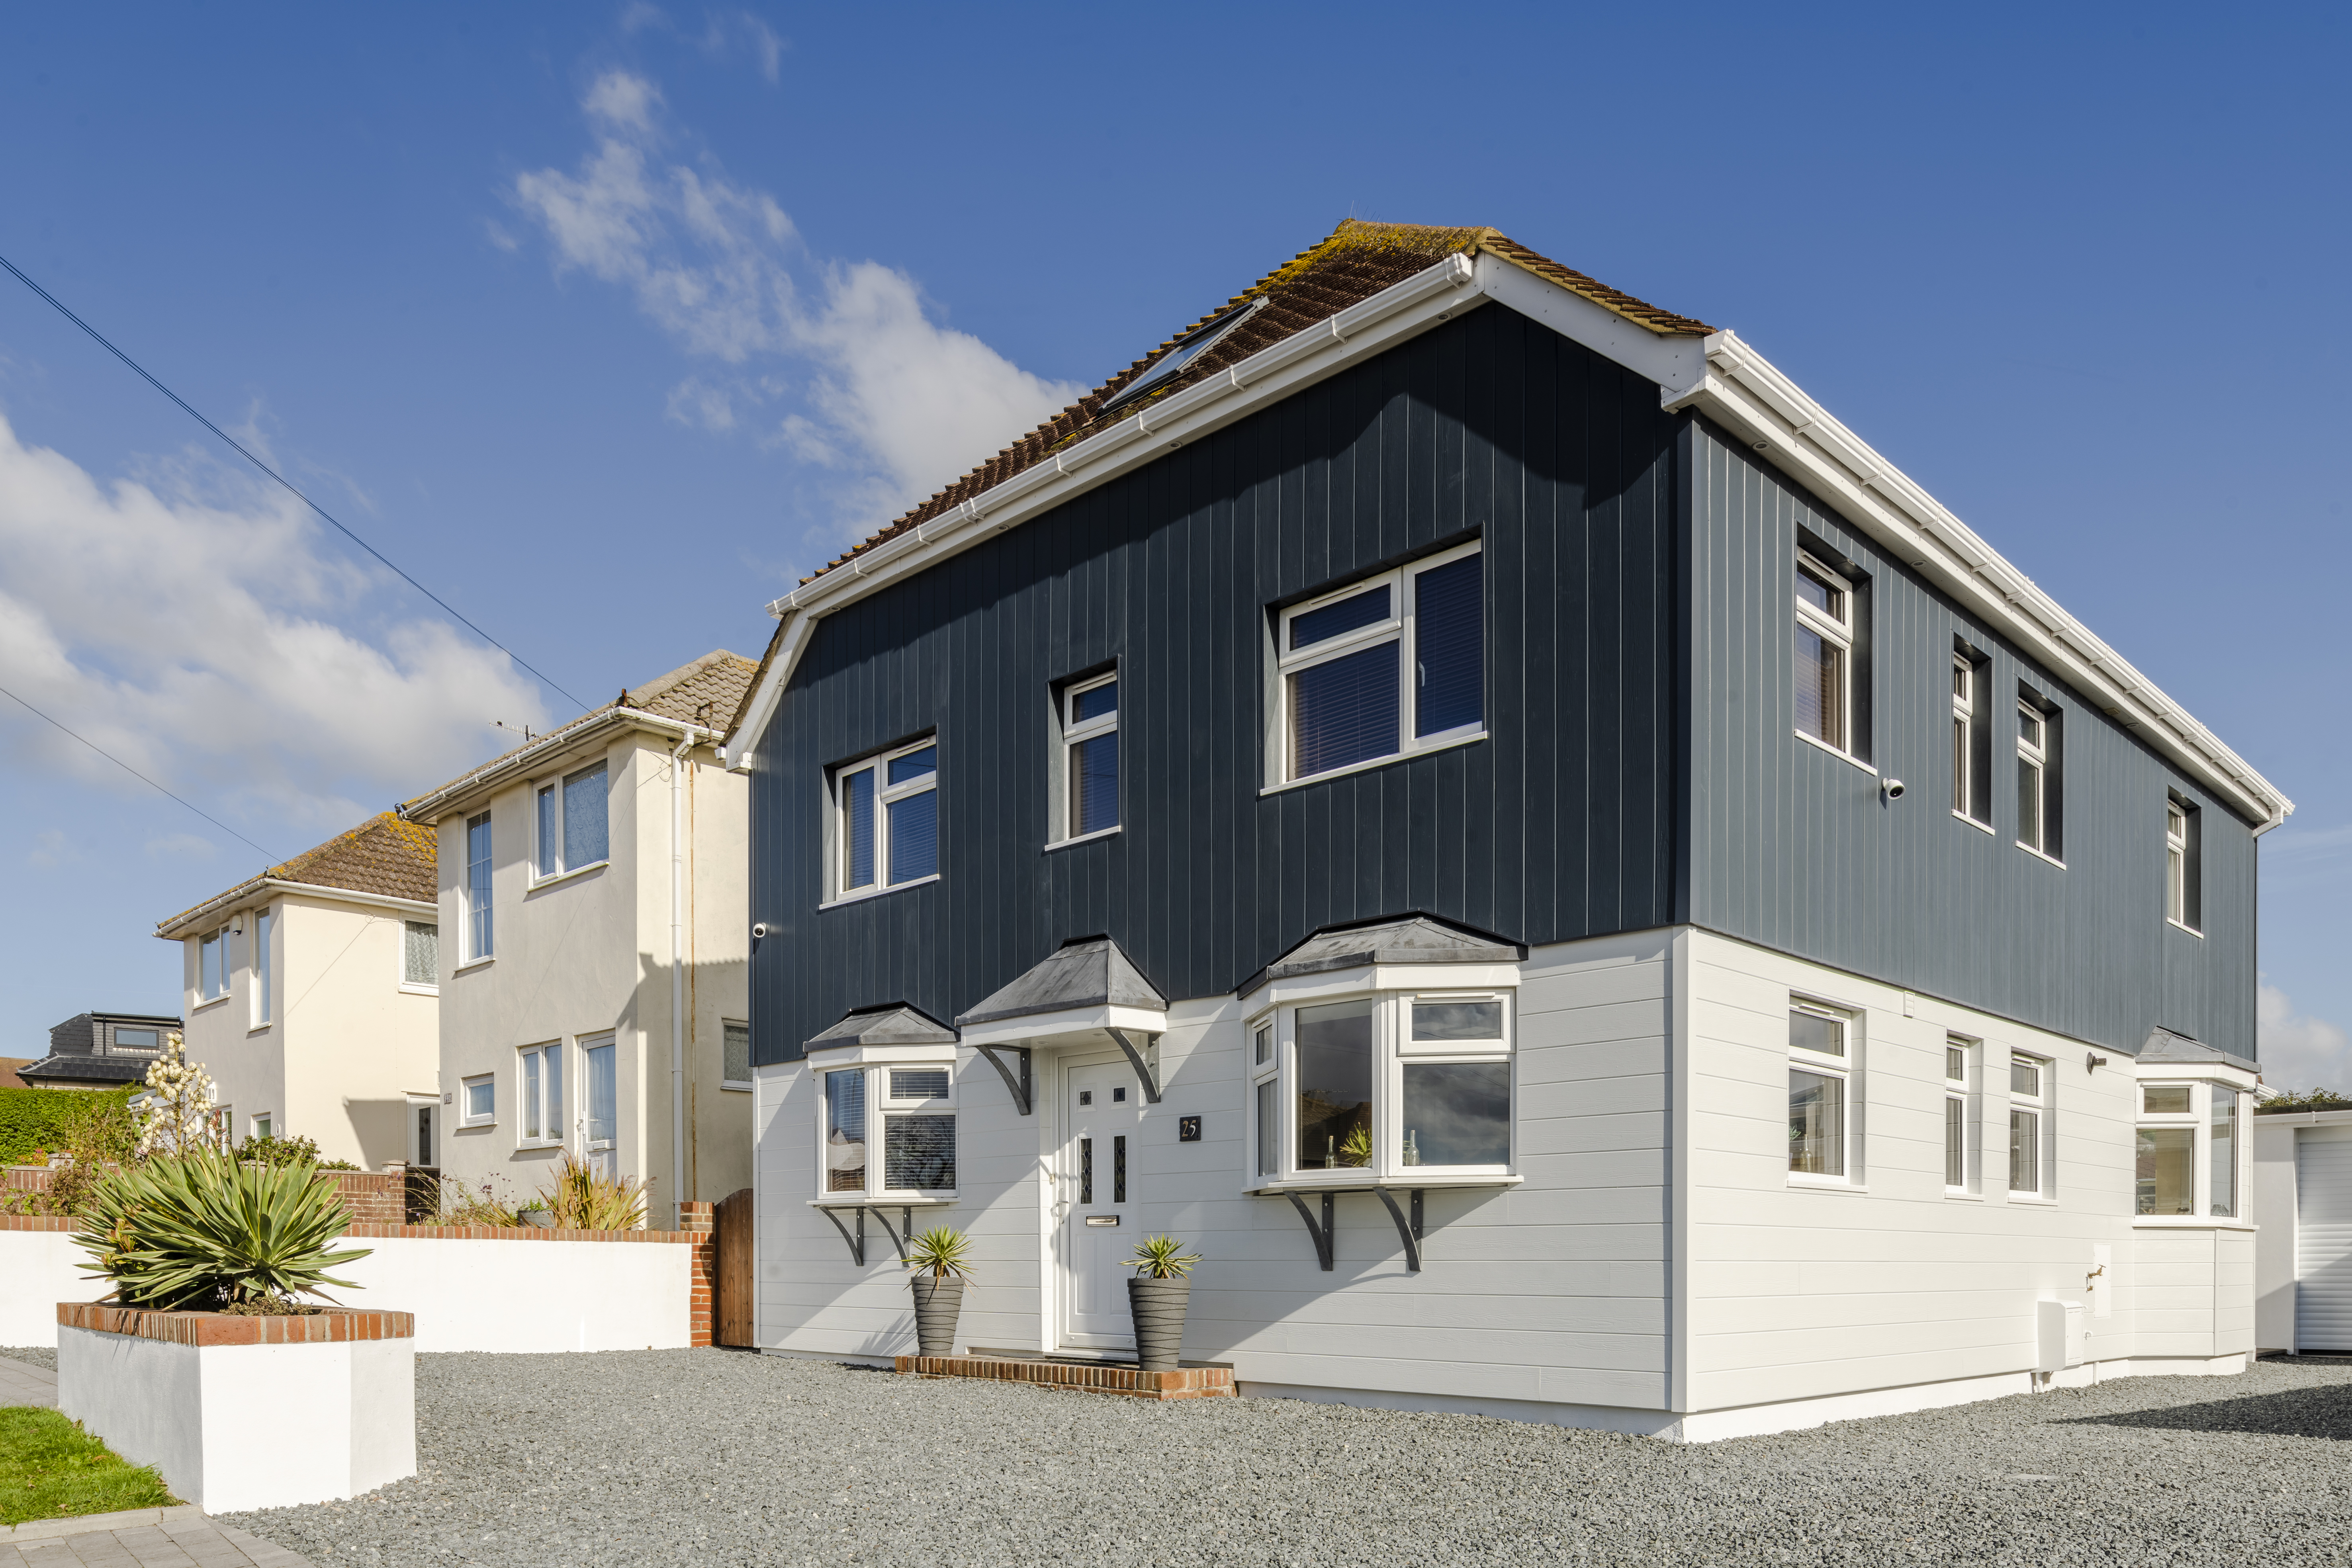 HardiePlank VL tongue and groove weatherboard transforms old render home